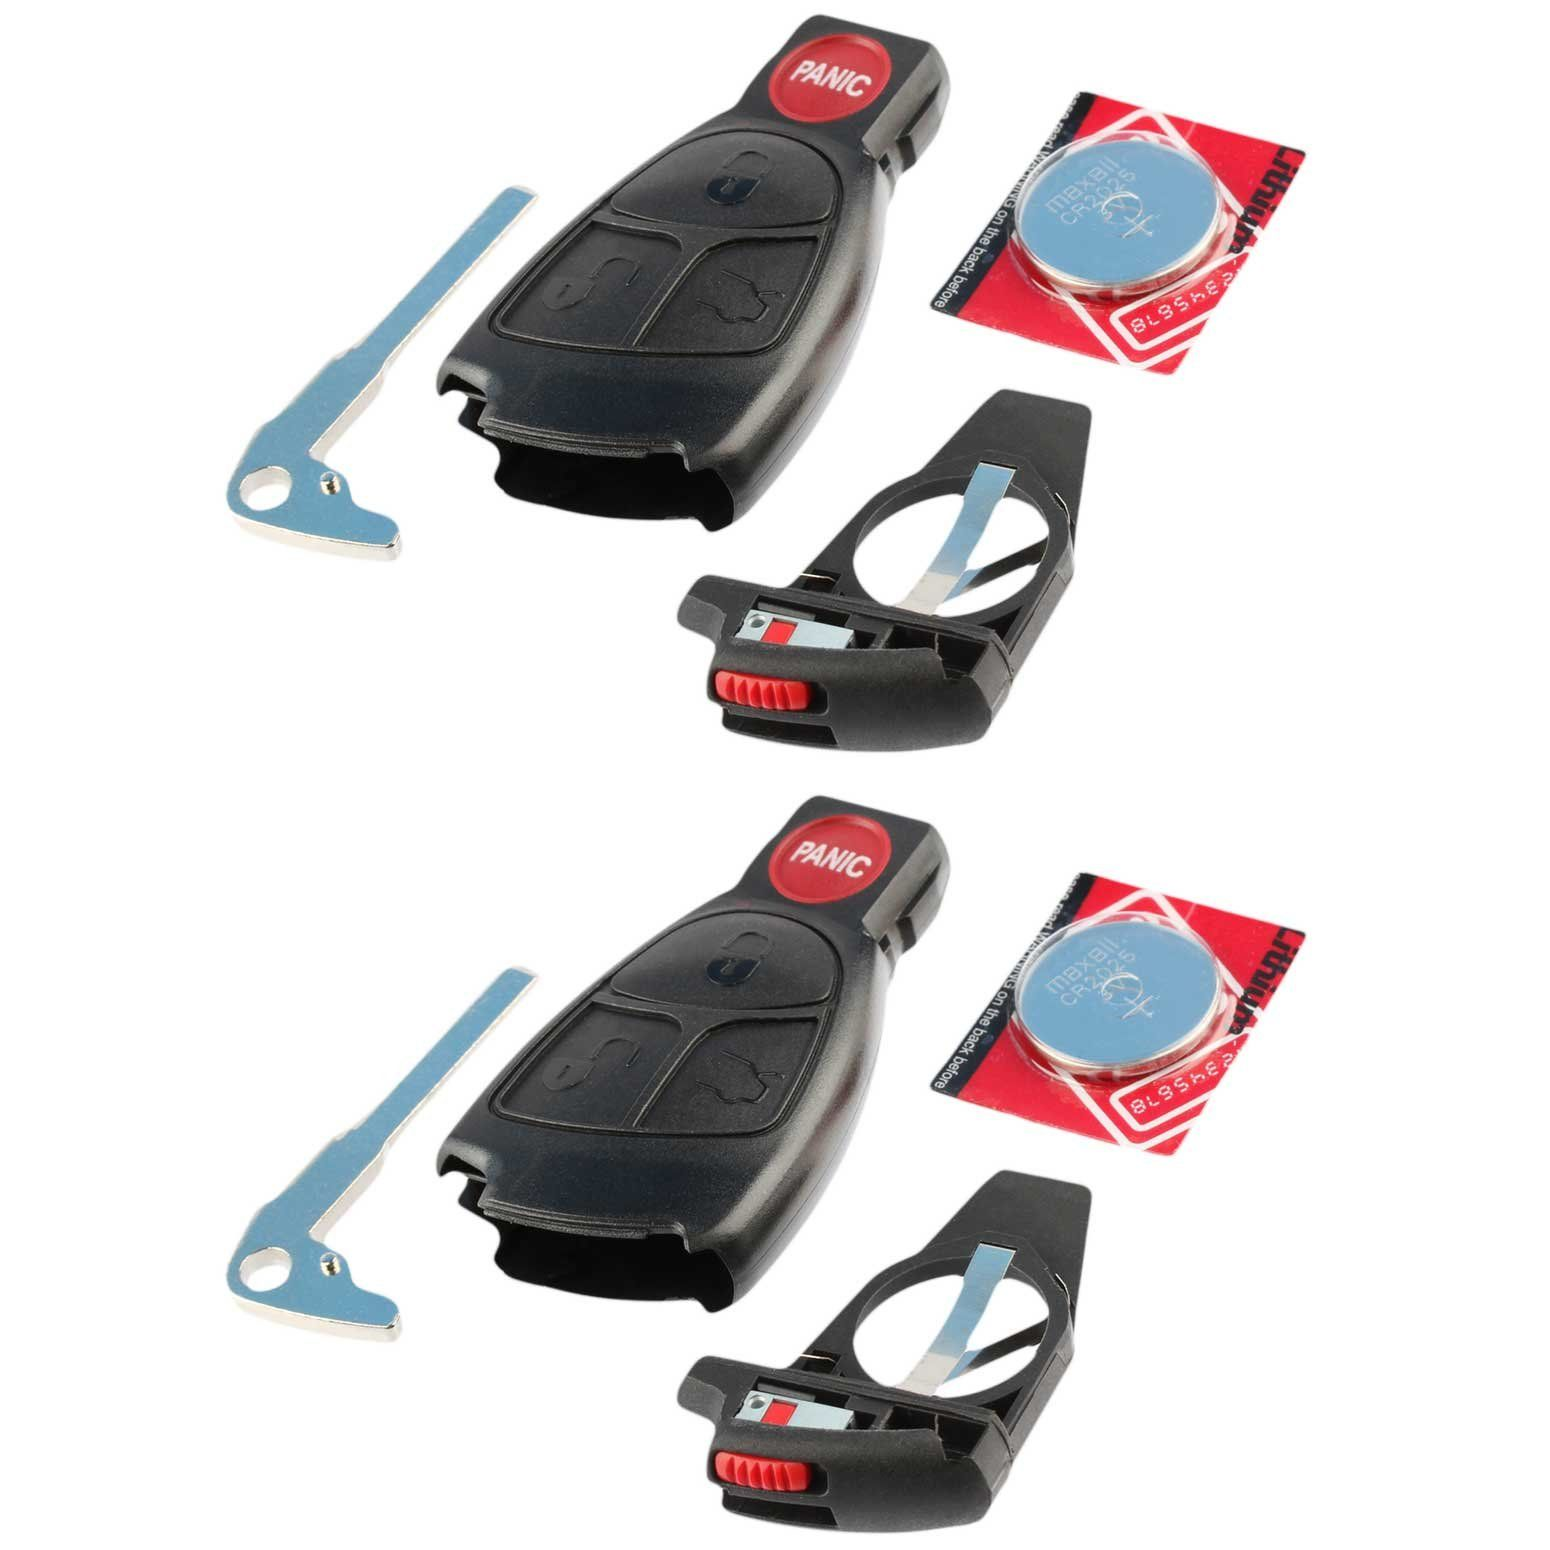 Key fob keyless entry remote shell case and pad fits